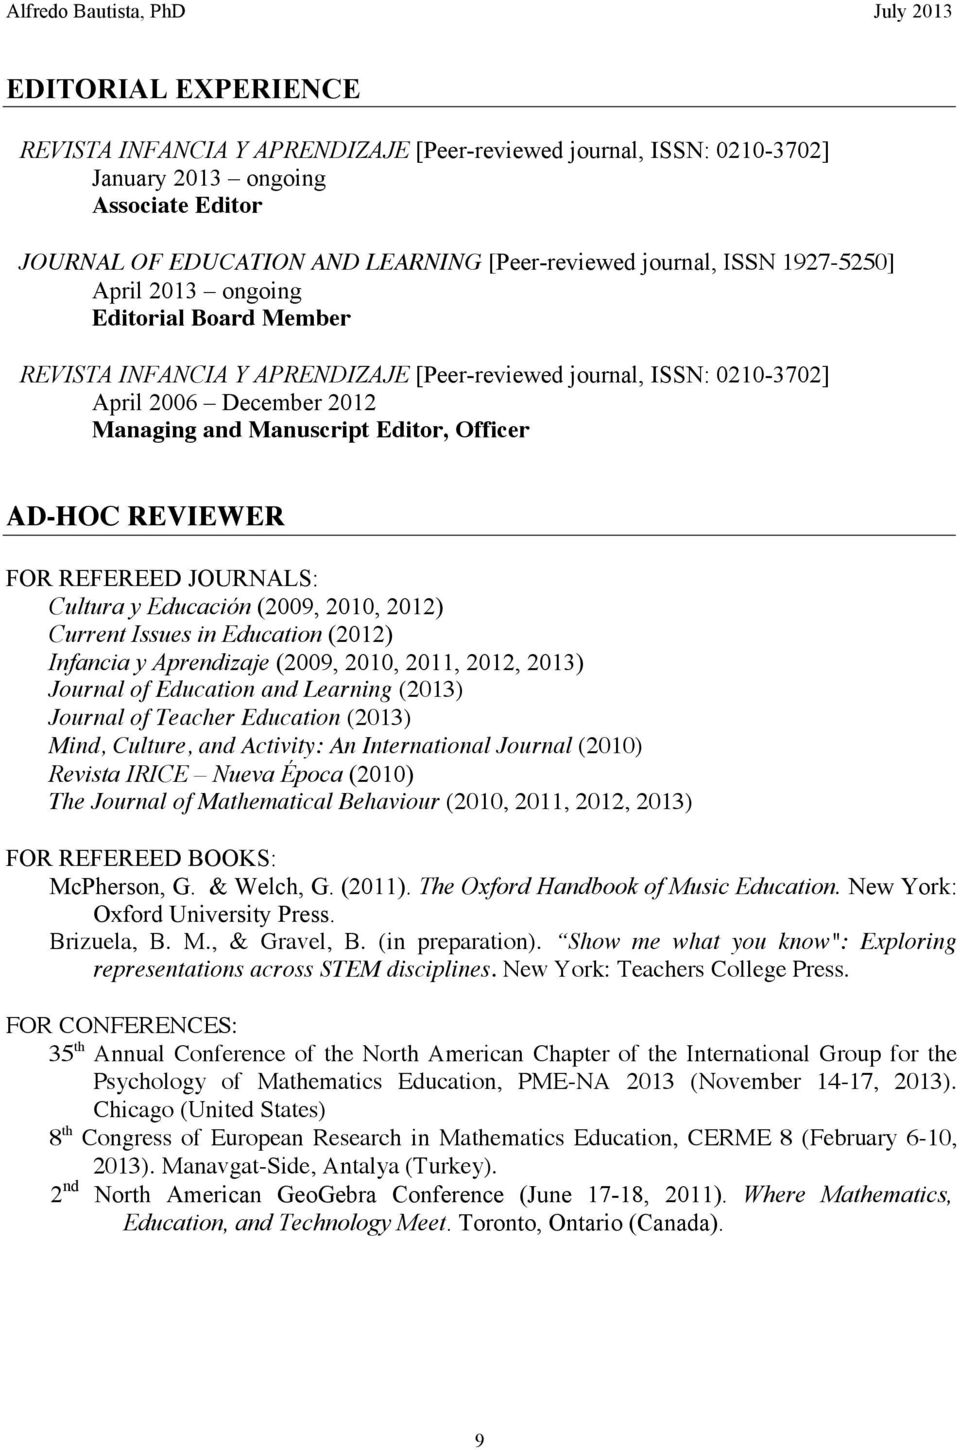 REVIEWER FOR REFEREED JOURNALS: Cultura y Educación (2009, 2010, 2012) Current Issues in Education (2012) Infancia y Aprendizaje (2009, 2010, 2011, 2012, 2013) Journal of Education and Learning